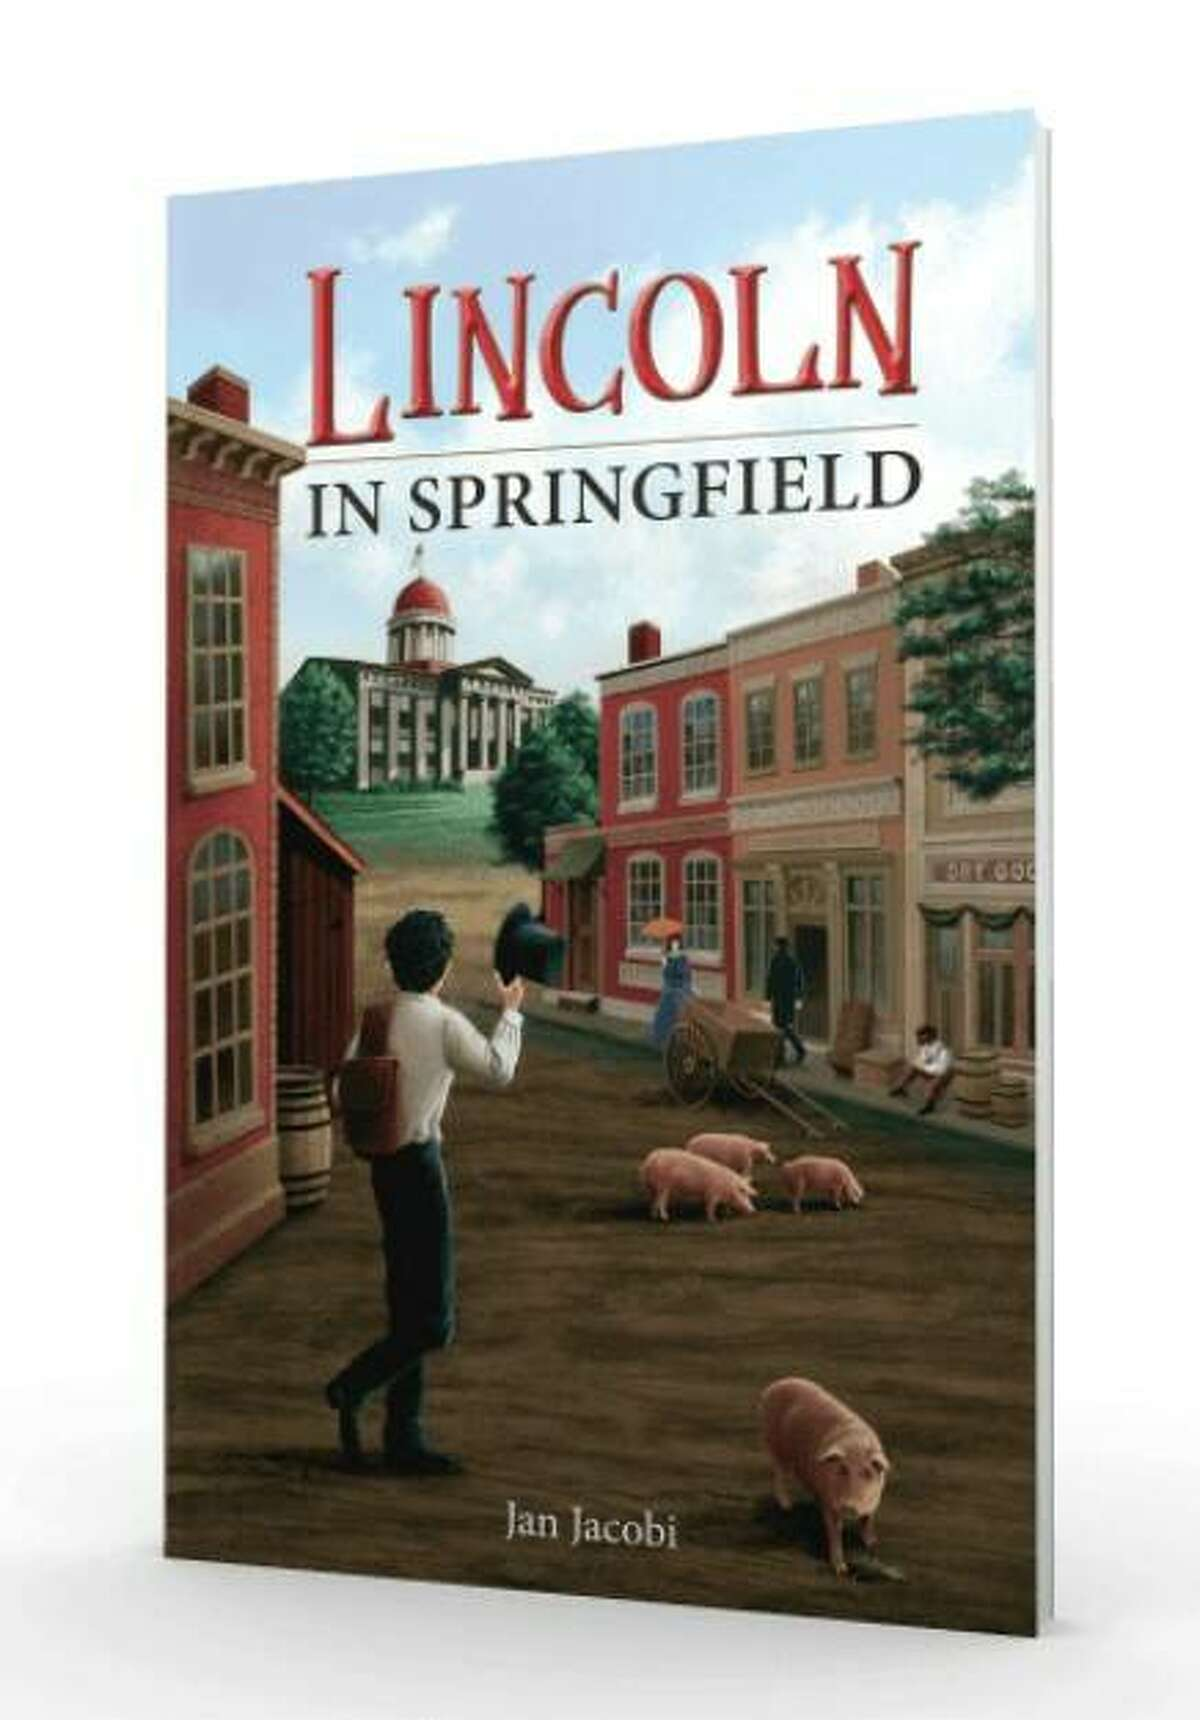 """Reedy Press has released """"Lincoln in Springfield"""" by Jan Jacobi, who will be at the fourth annual Edwardsville Book Festival 9 a.m. to 3 p.m. Saturday, Oct. 9, at Edwardsville City Park."""